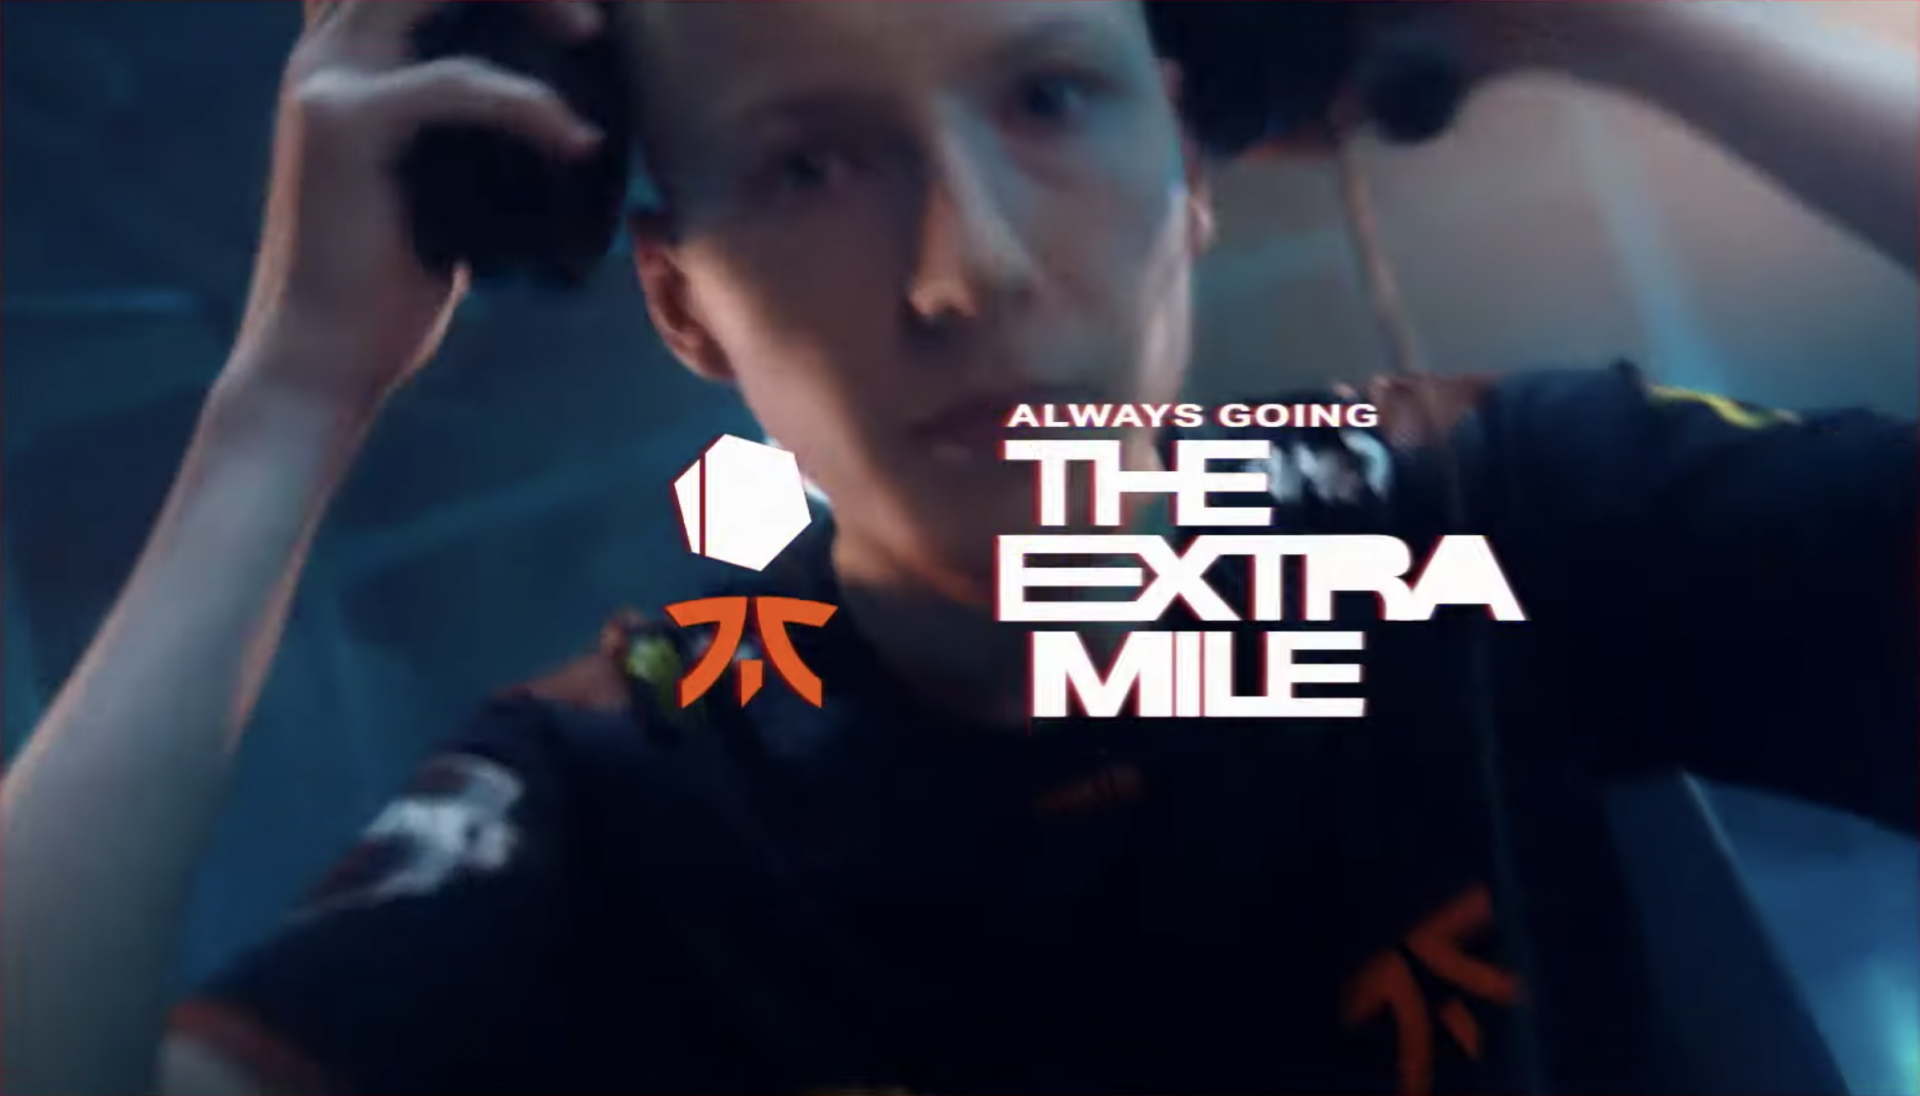 Fnatic teams up with Freeletics to launch The Extra Mile Campaign thumbnail